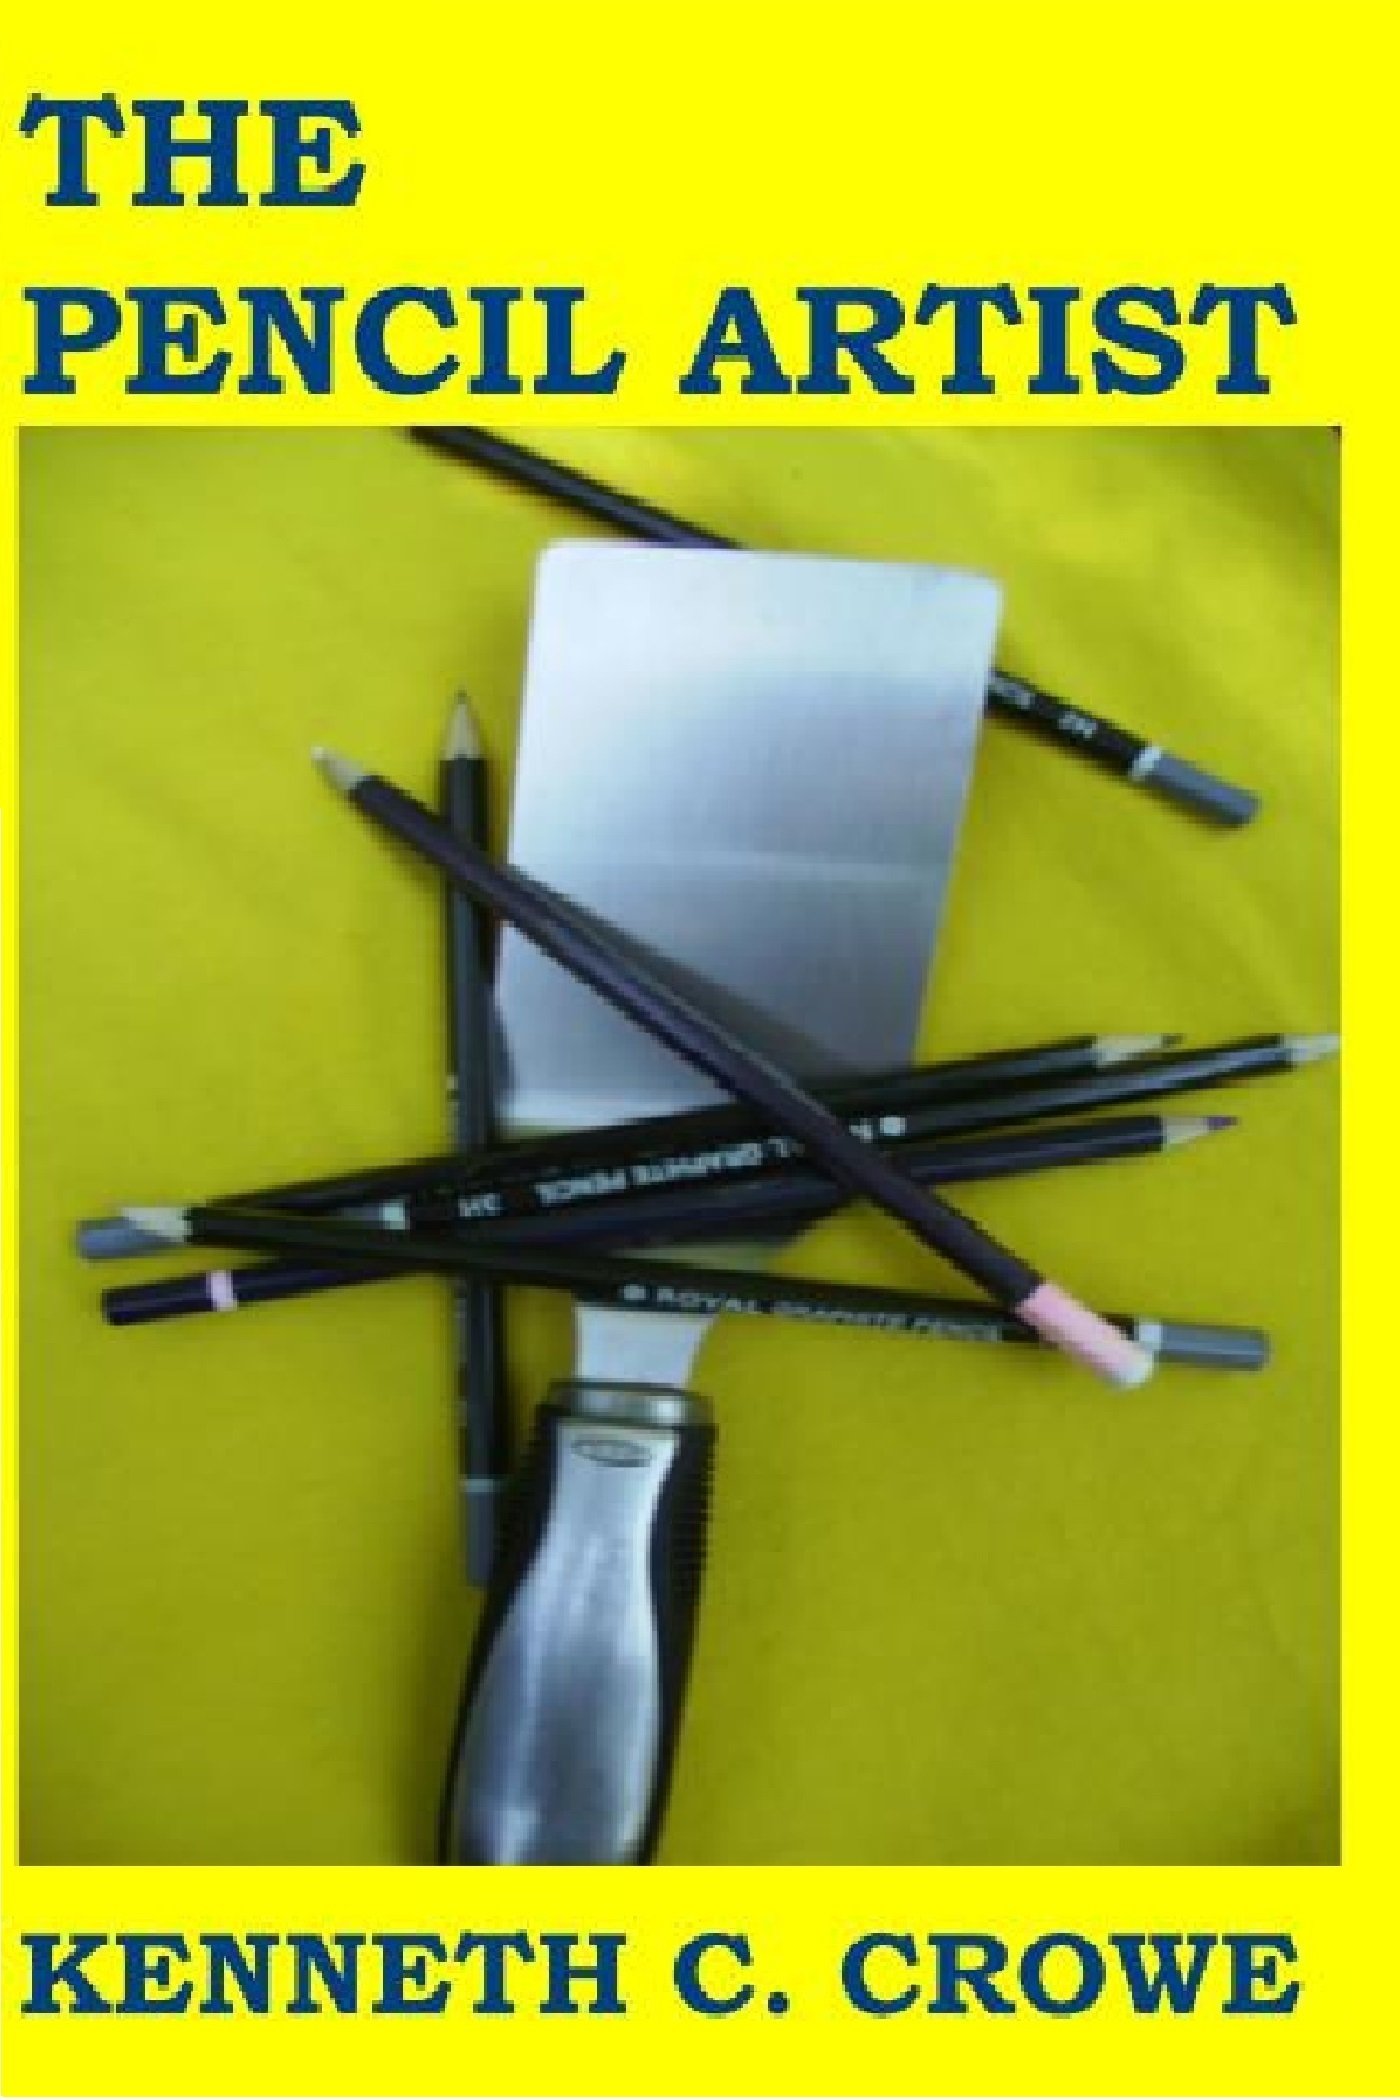 The Pencil Artist Kenneth Crowe